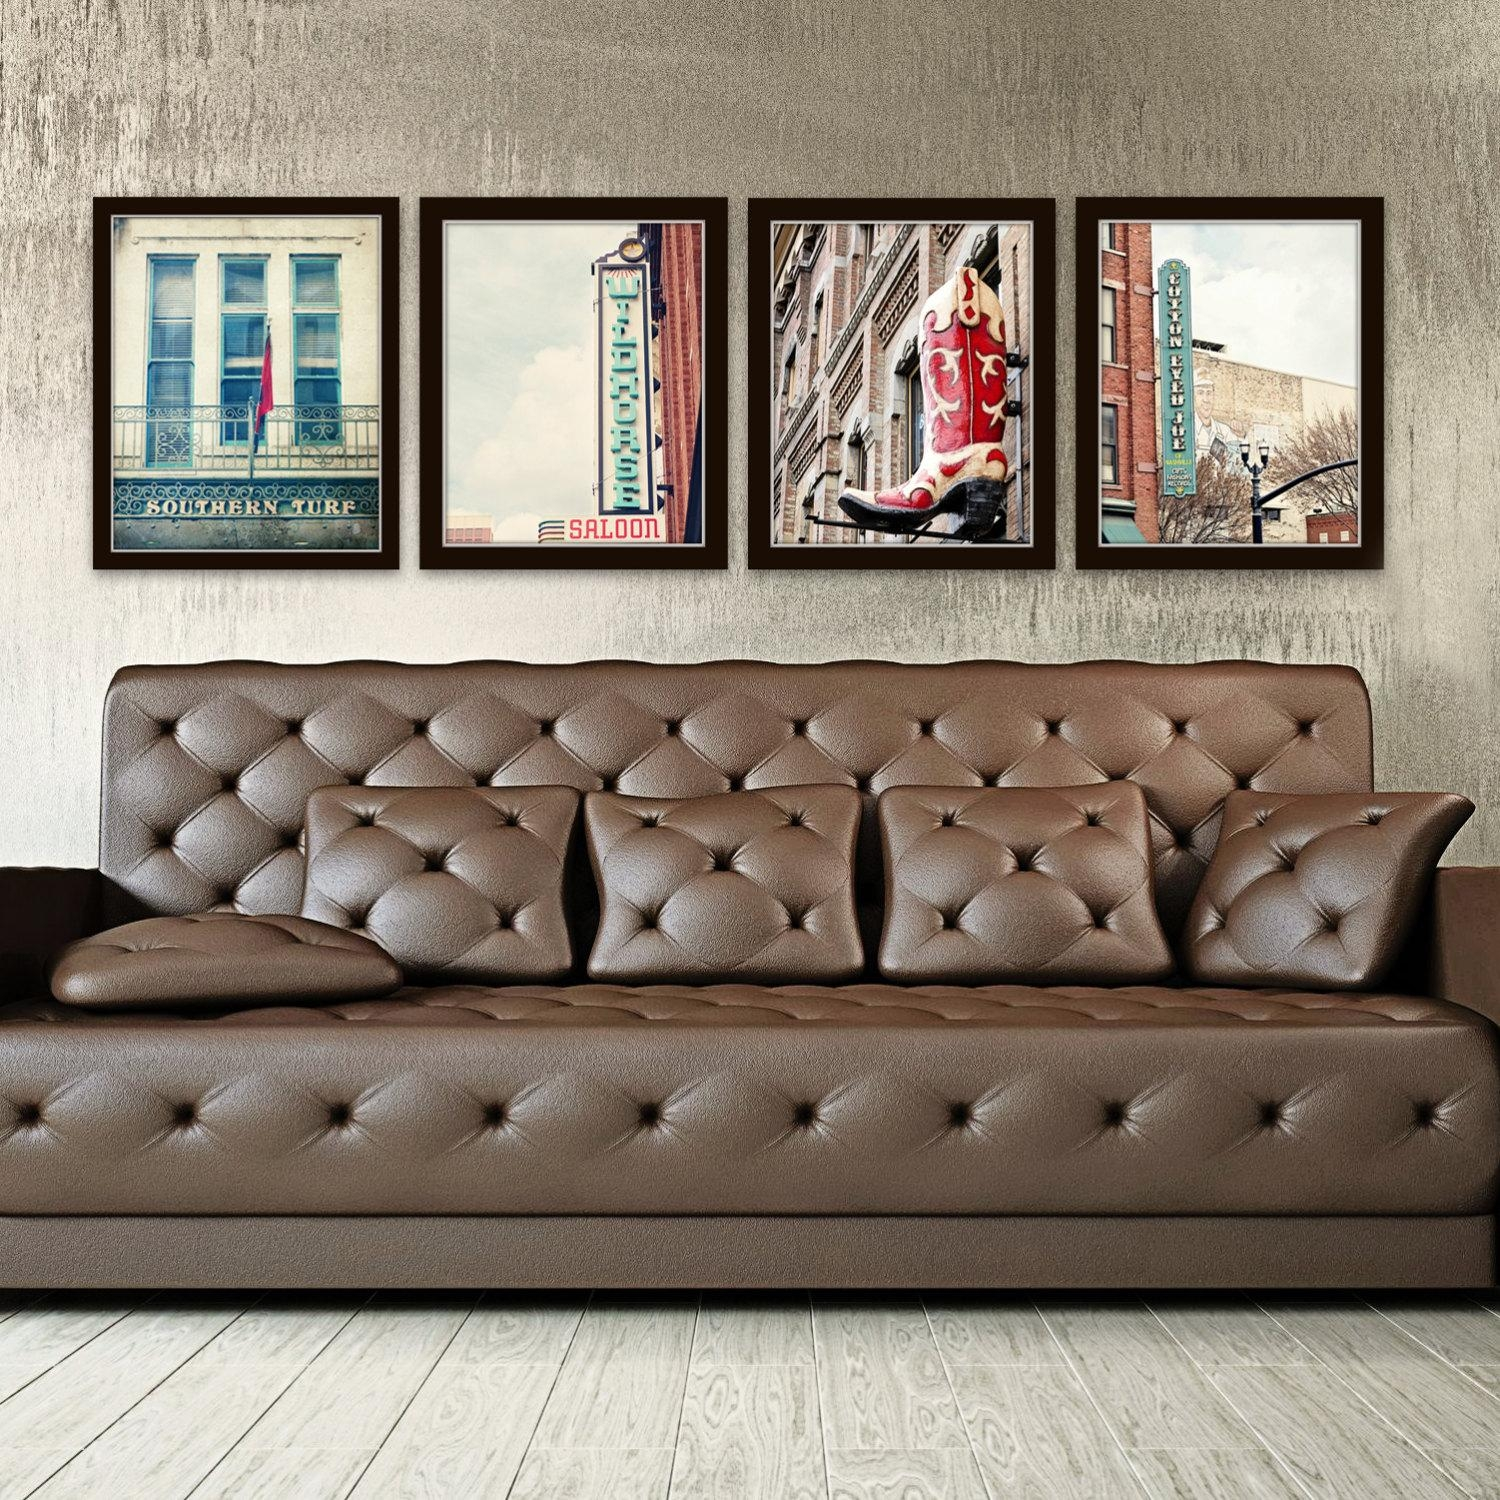 Nashville Wall Art Industrial Decor City Photography Set Of 4 intended for Industrial Wall Art